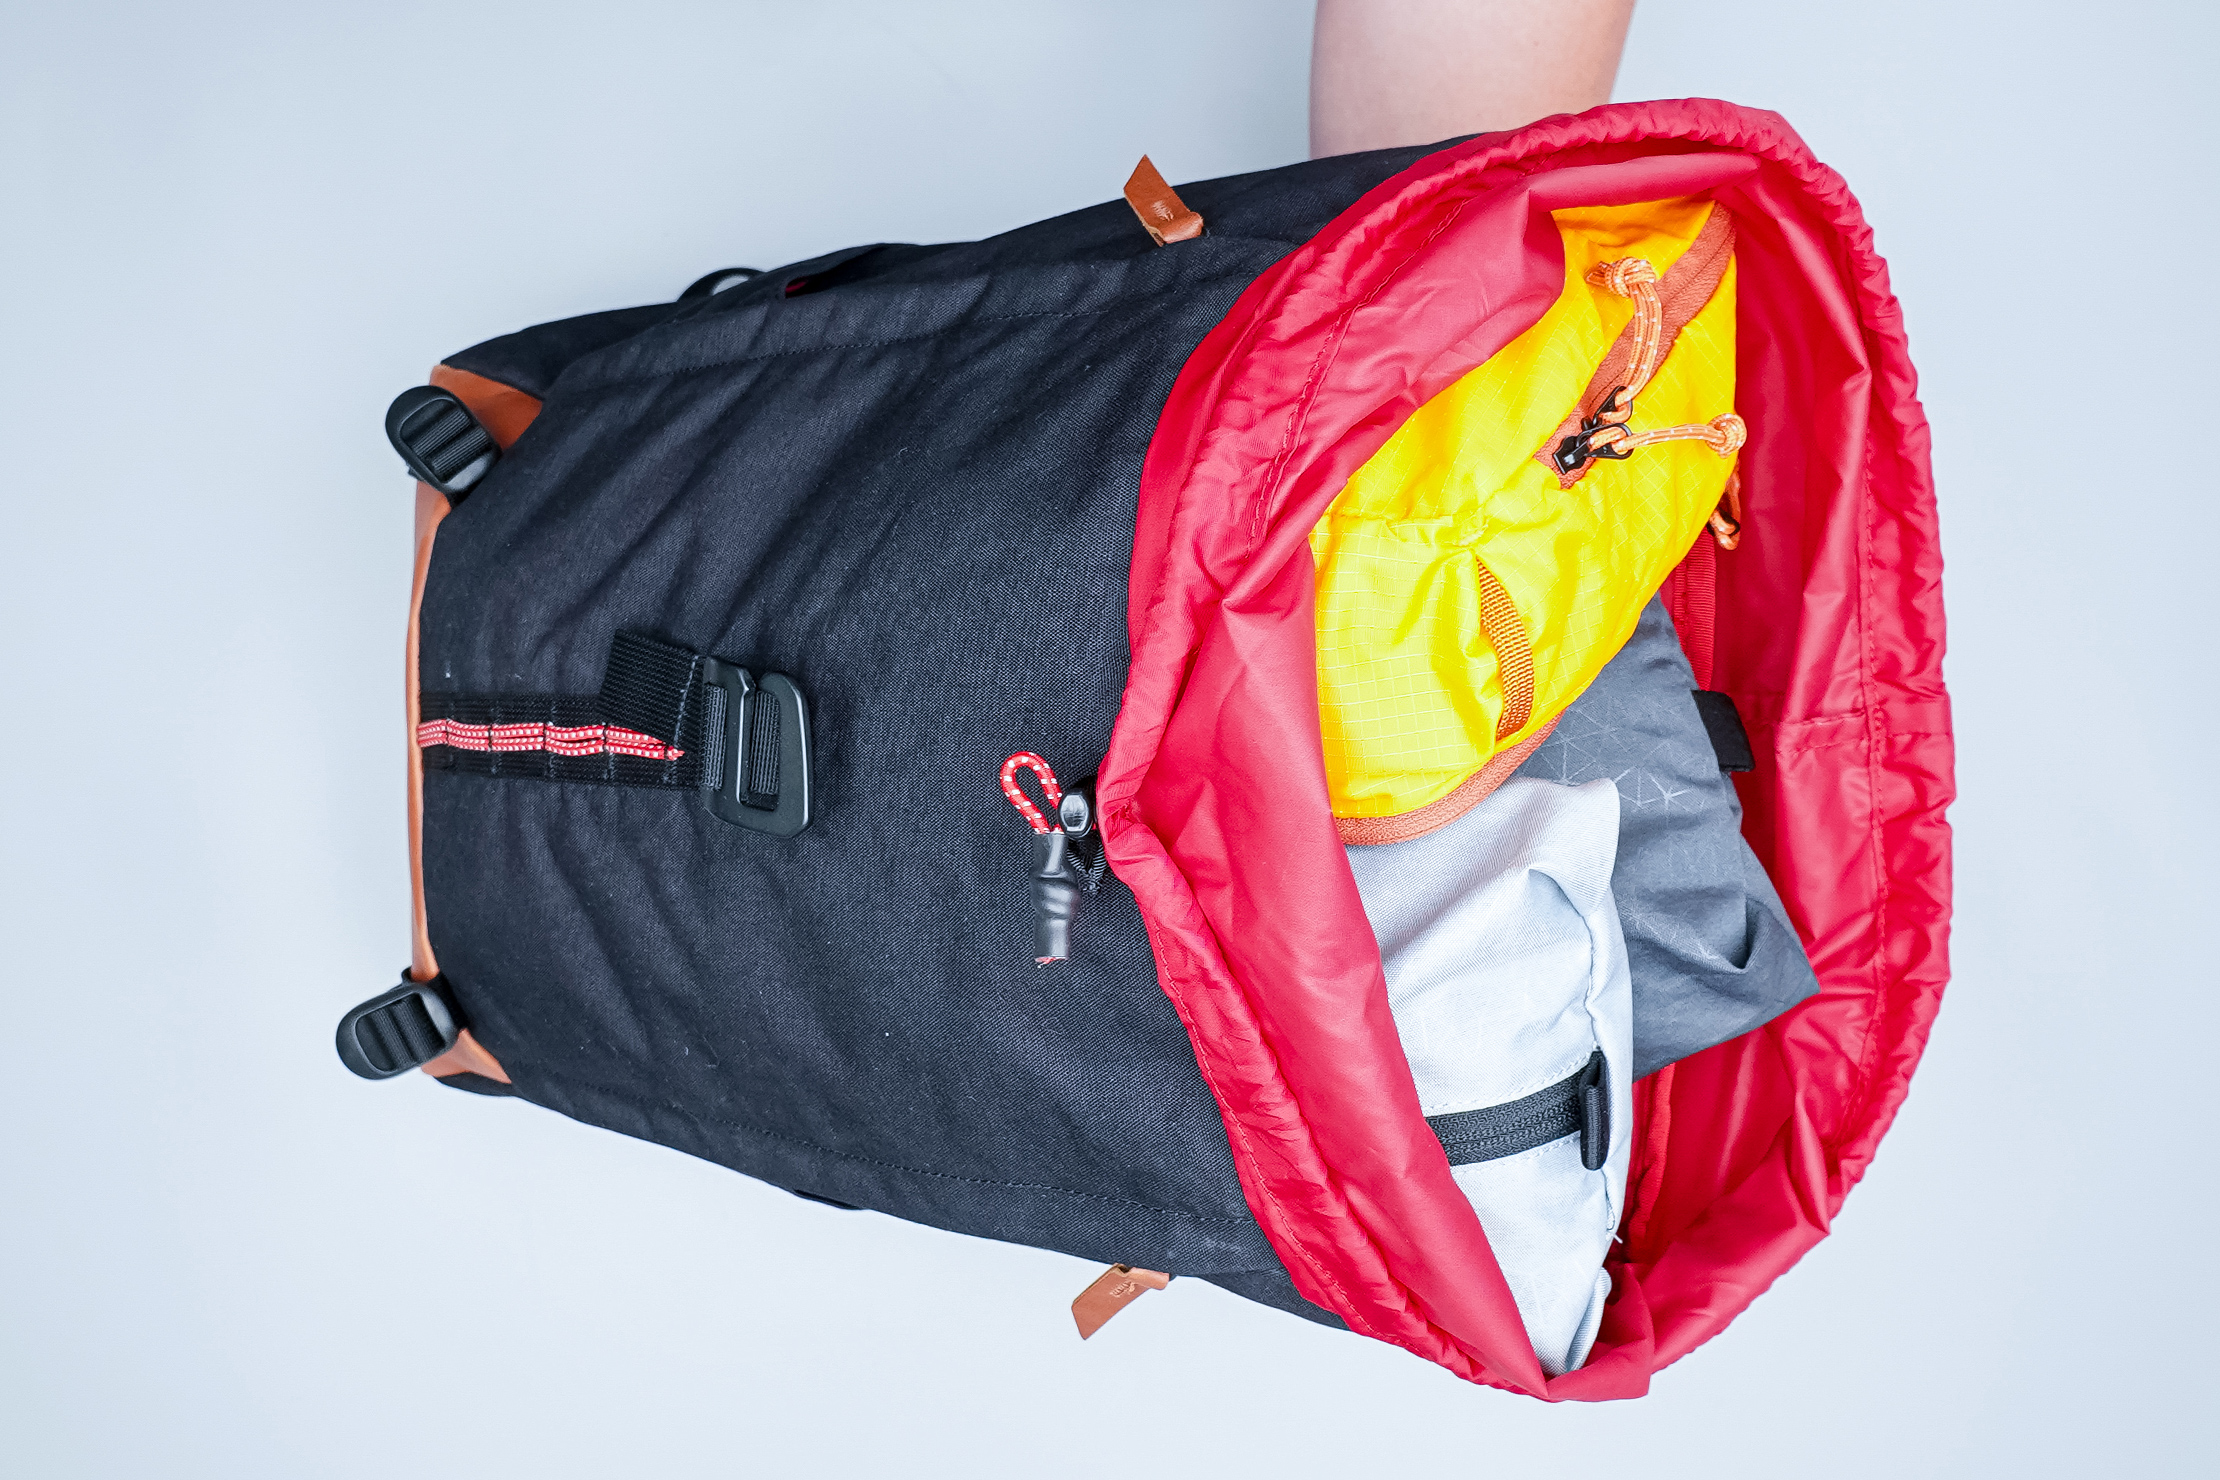 Danner 26L Daypack Red Interior with Packing Cubes